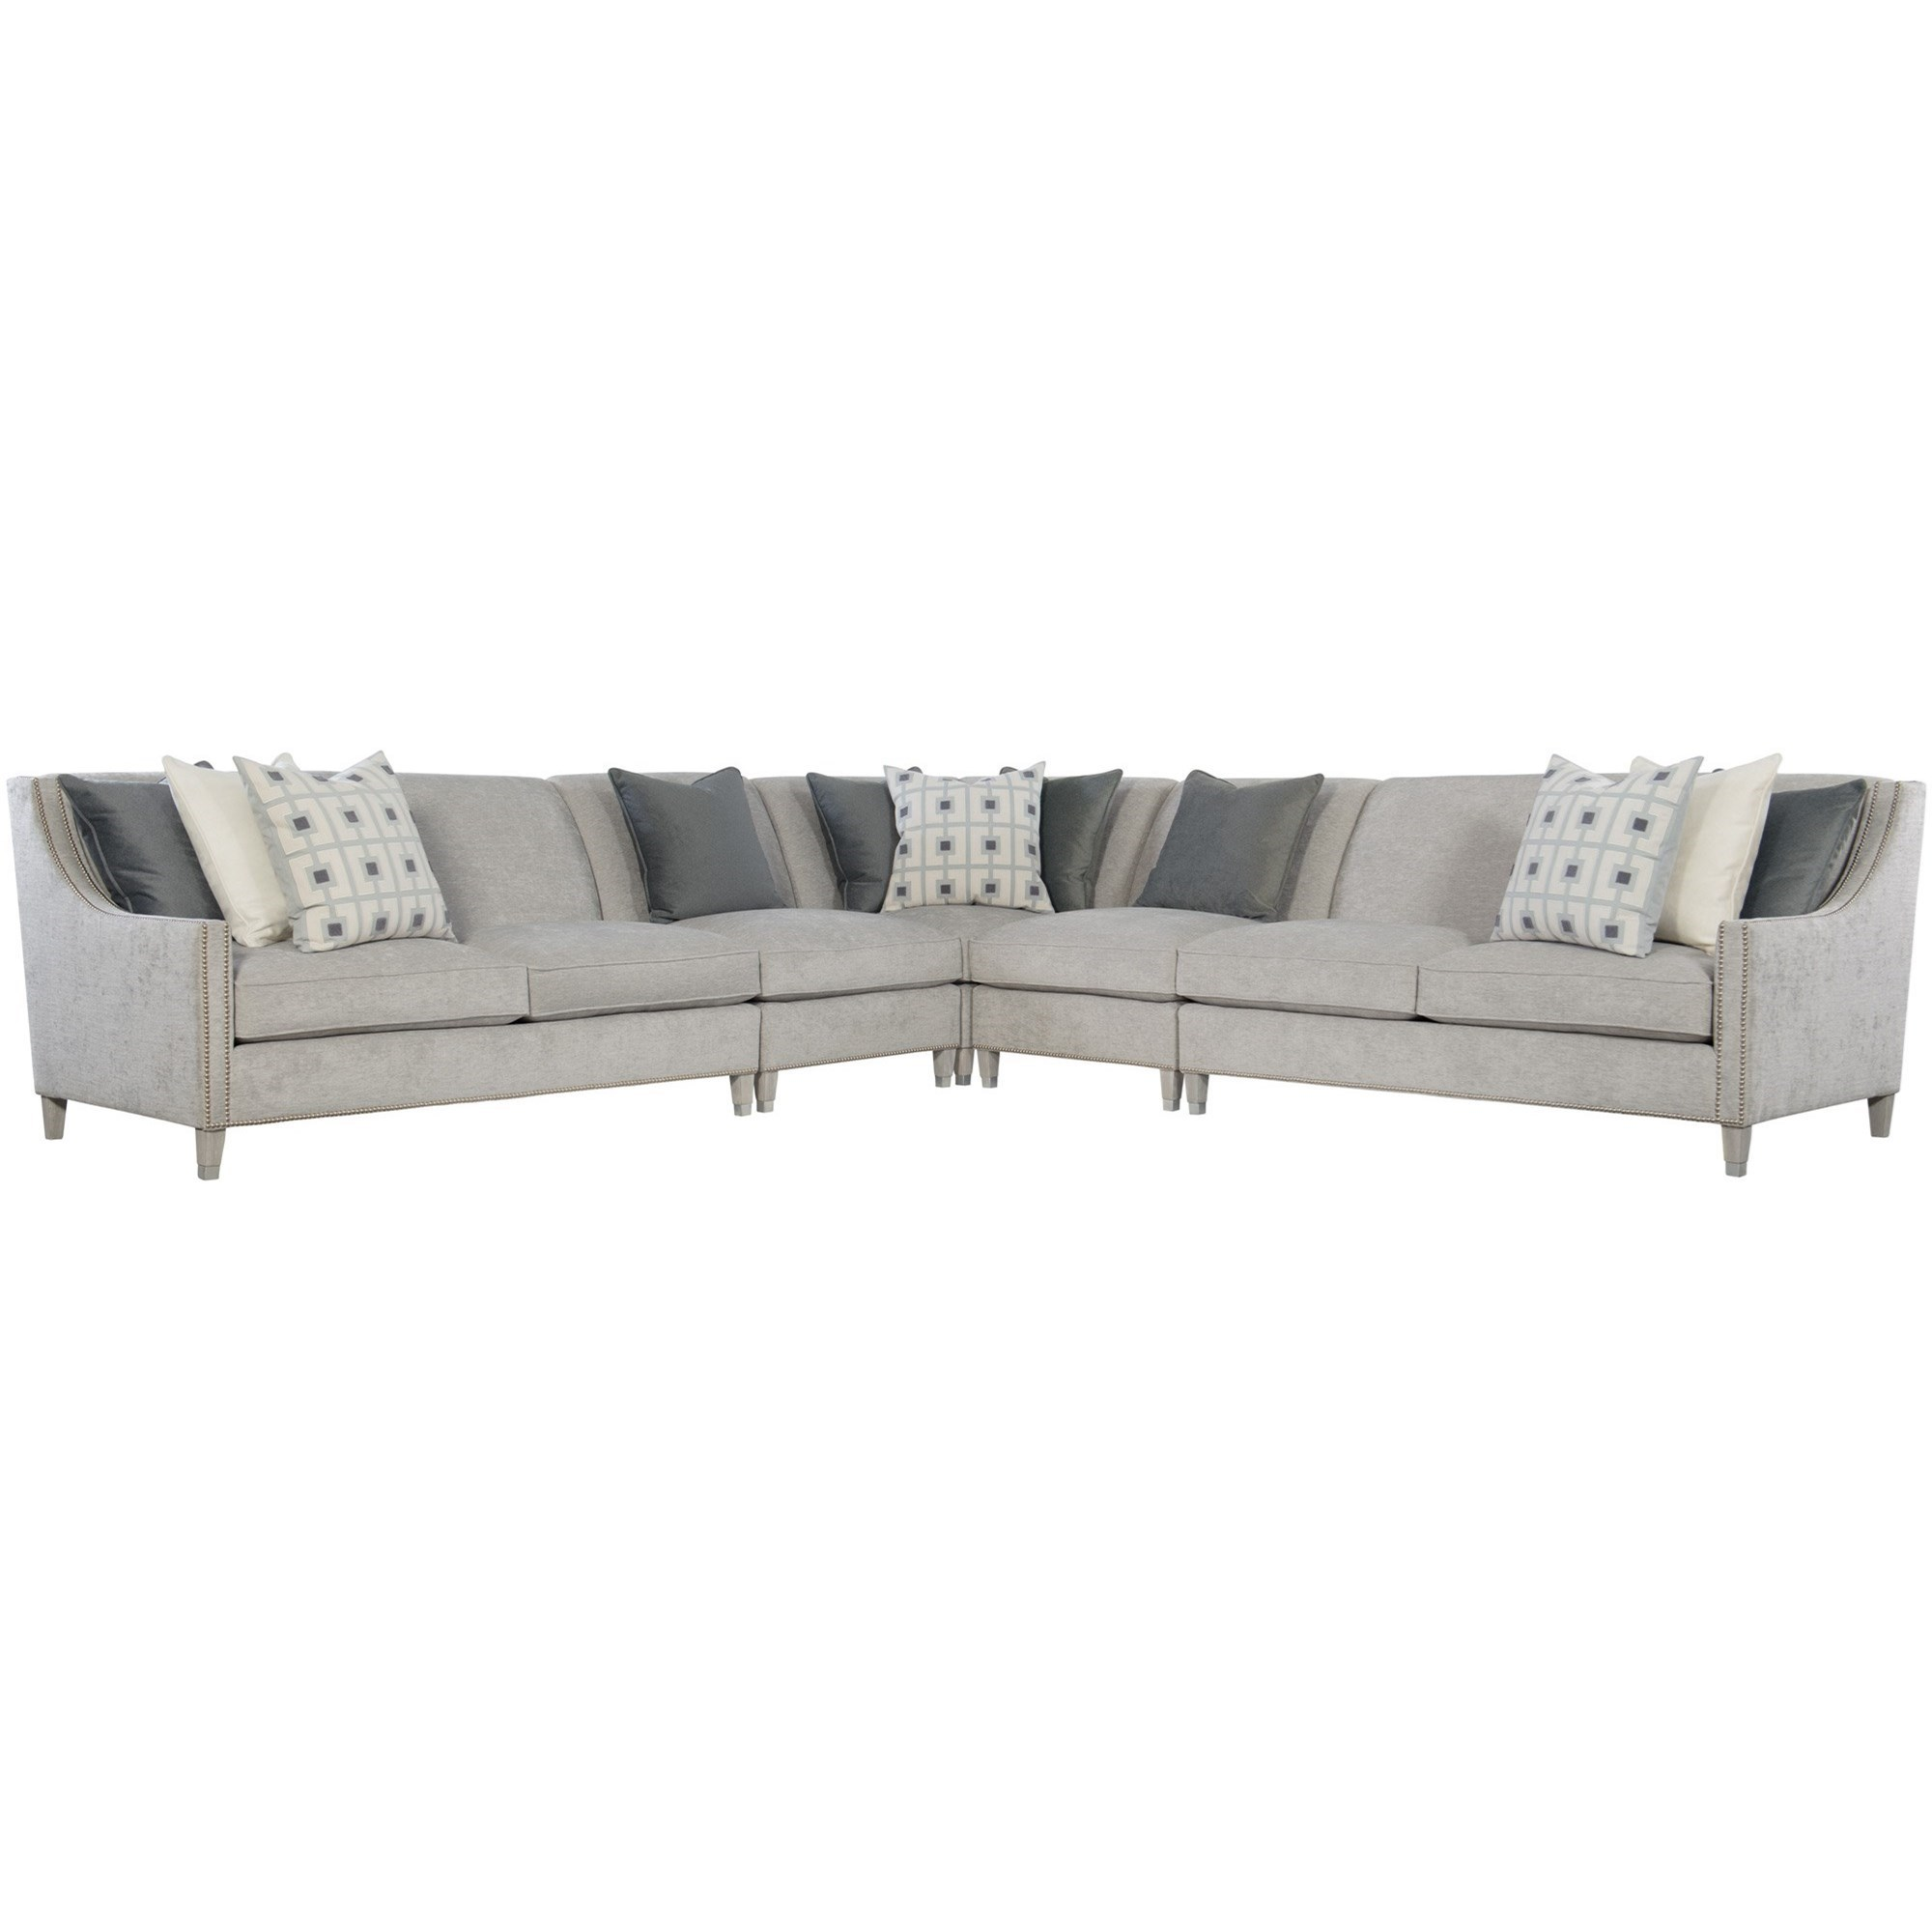 Picture of: Bernhardt Interiors Palisades Transitional 5 Piece Sectional With Nailhead Trim Howell Furniture Sectional Sofas